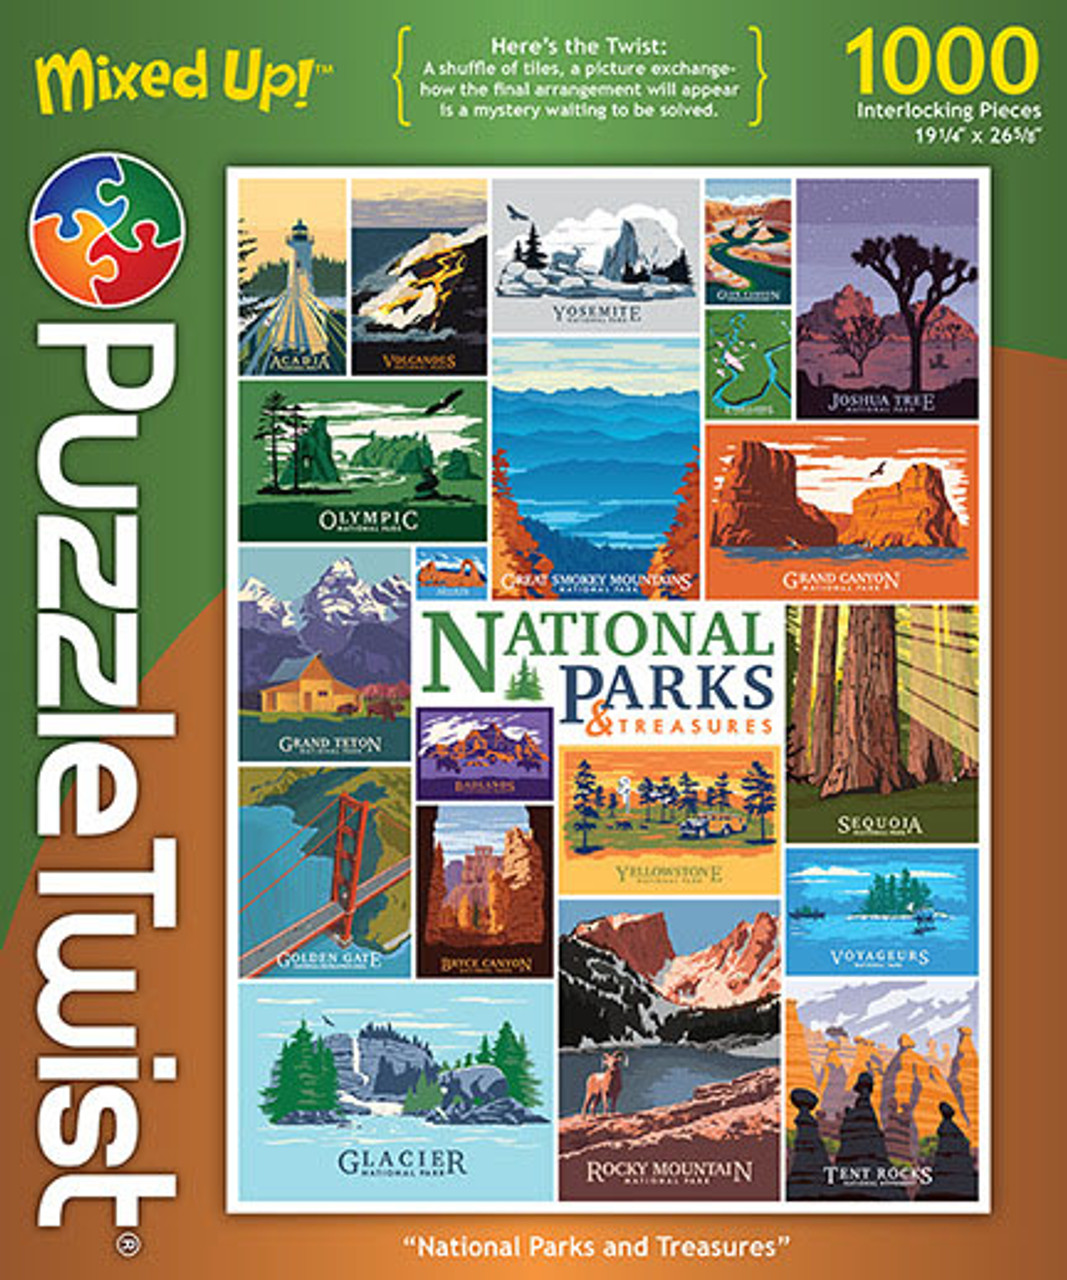 National Parks And Treasures 1000pc Jigsaw Puzzle By Puzzletwist Seriouspuzzles Com